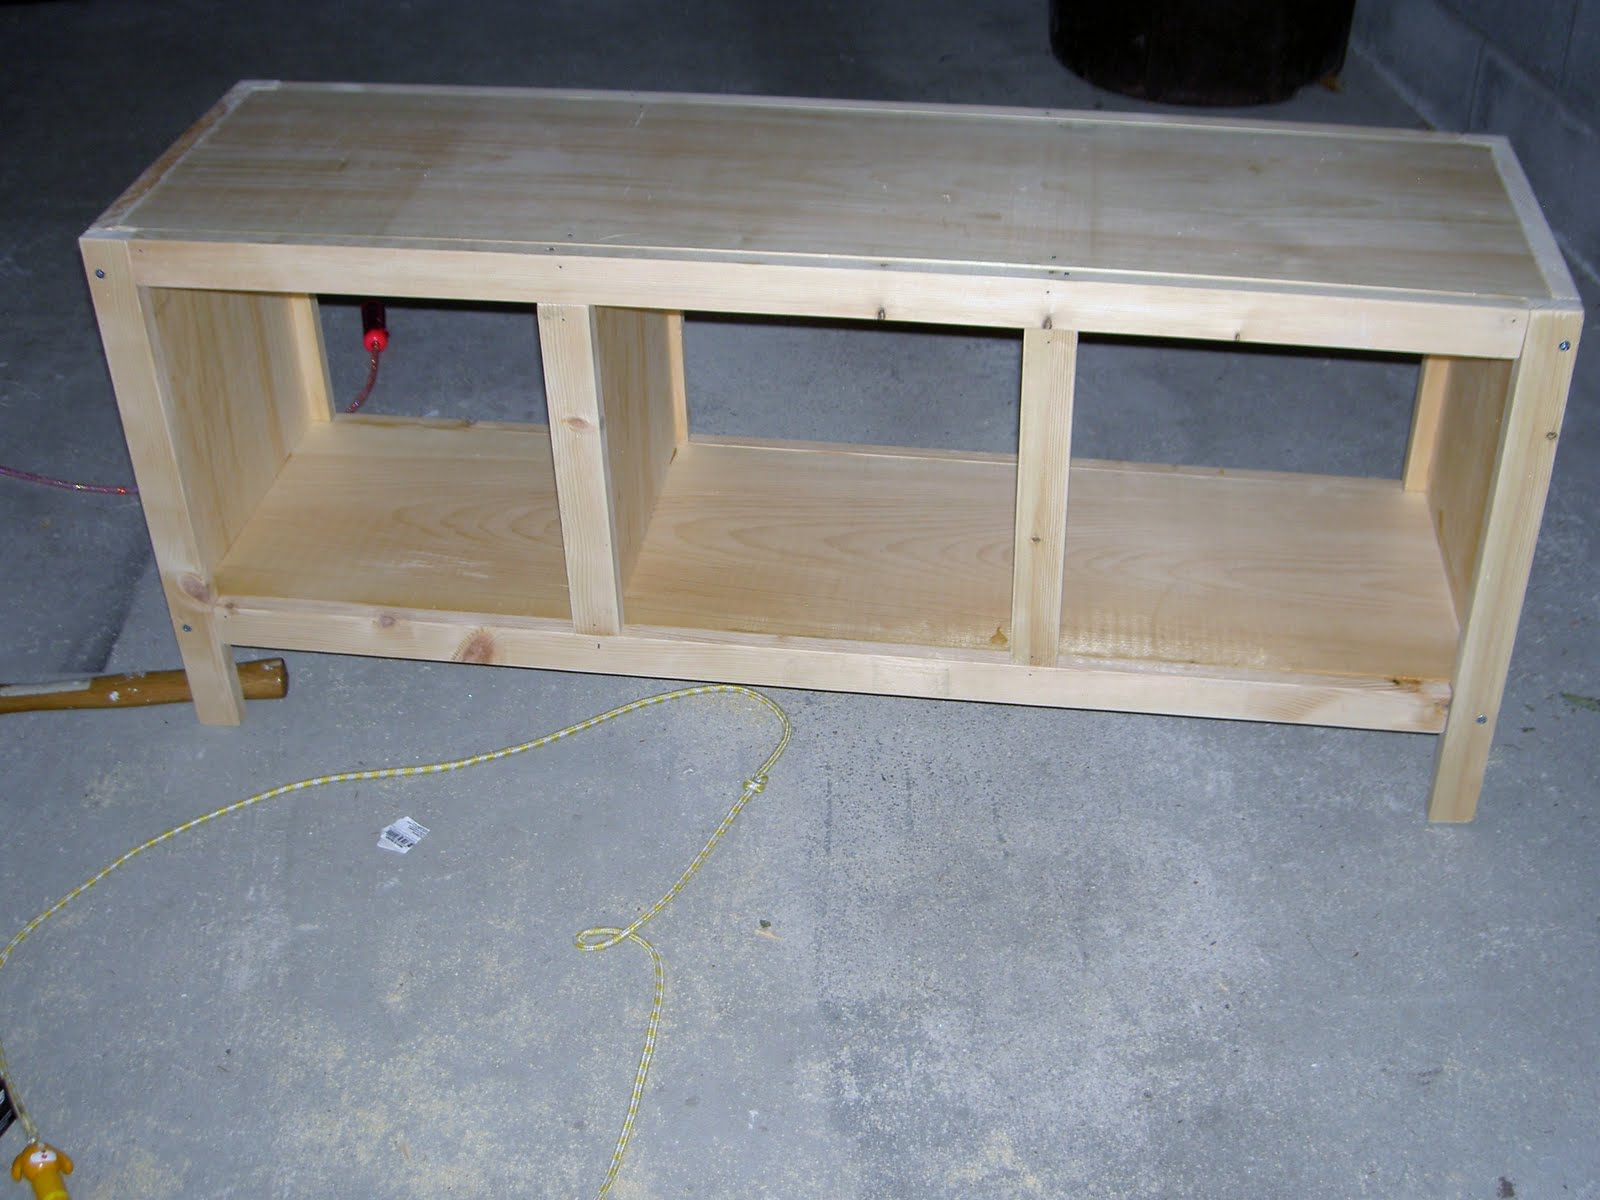 ana three projects white diy bench cube